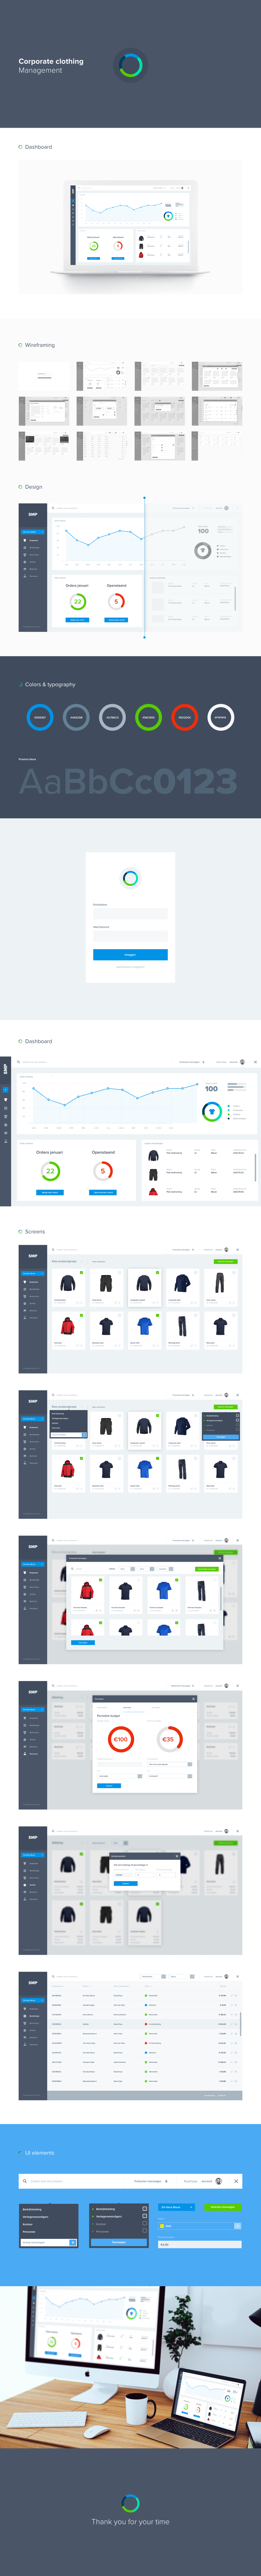 Clothing corporate dashboard management business application Interface b2b shop clothes webshop